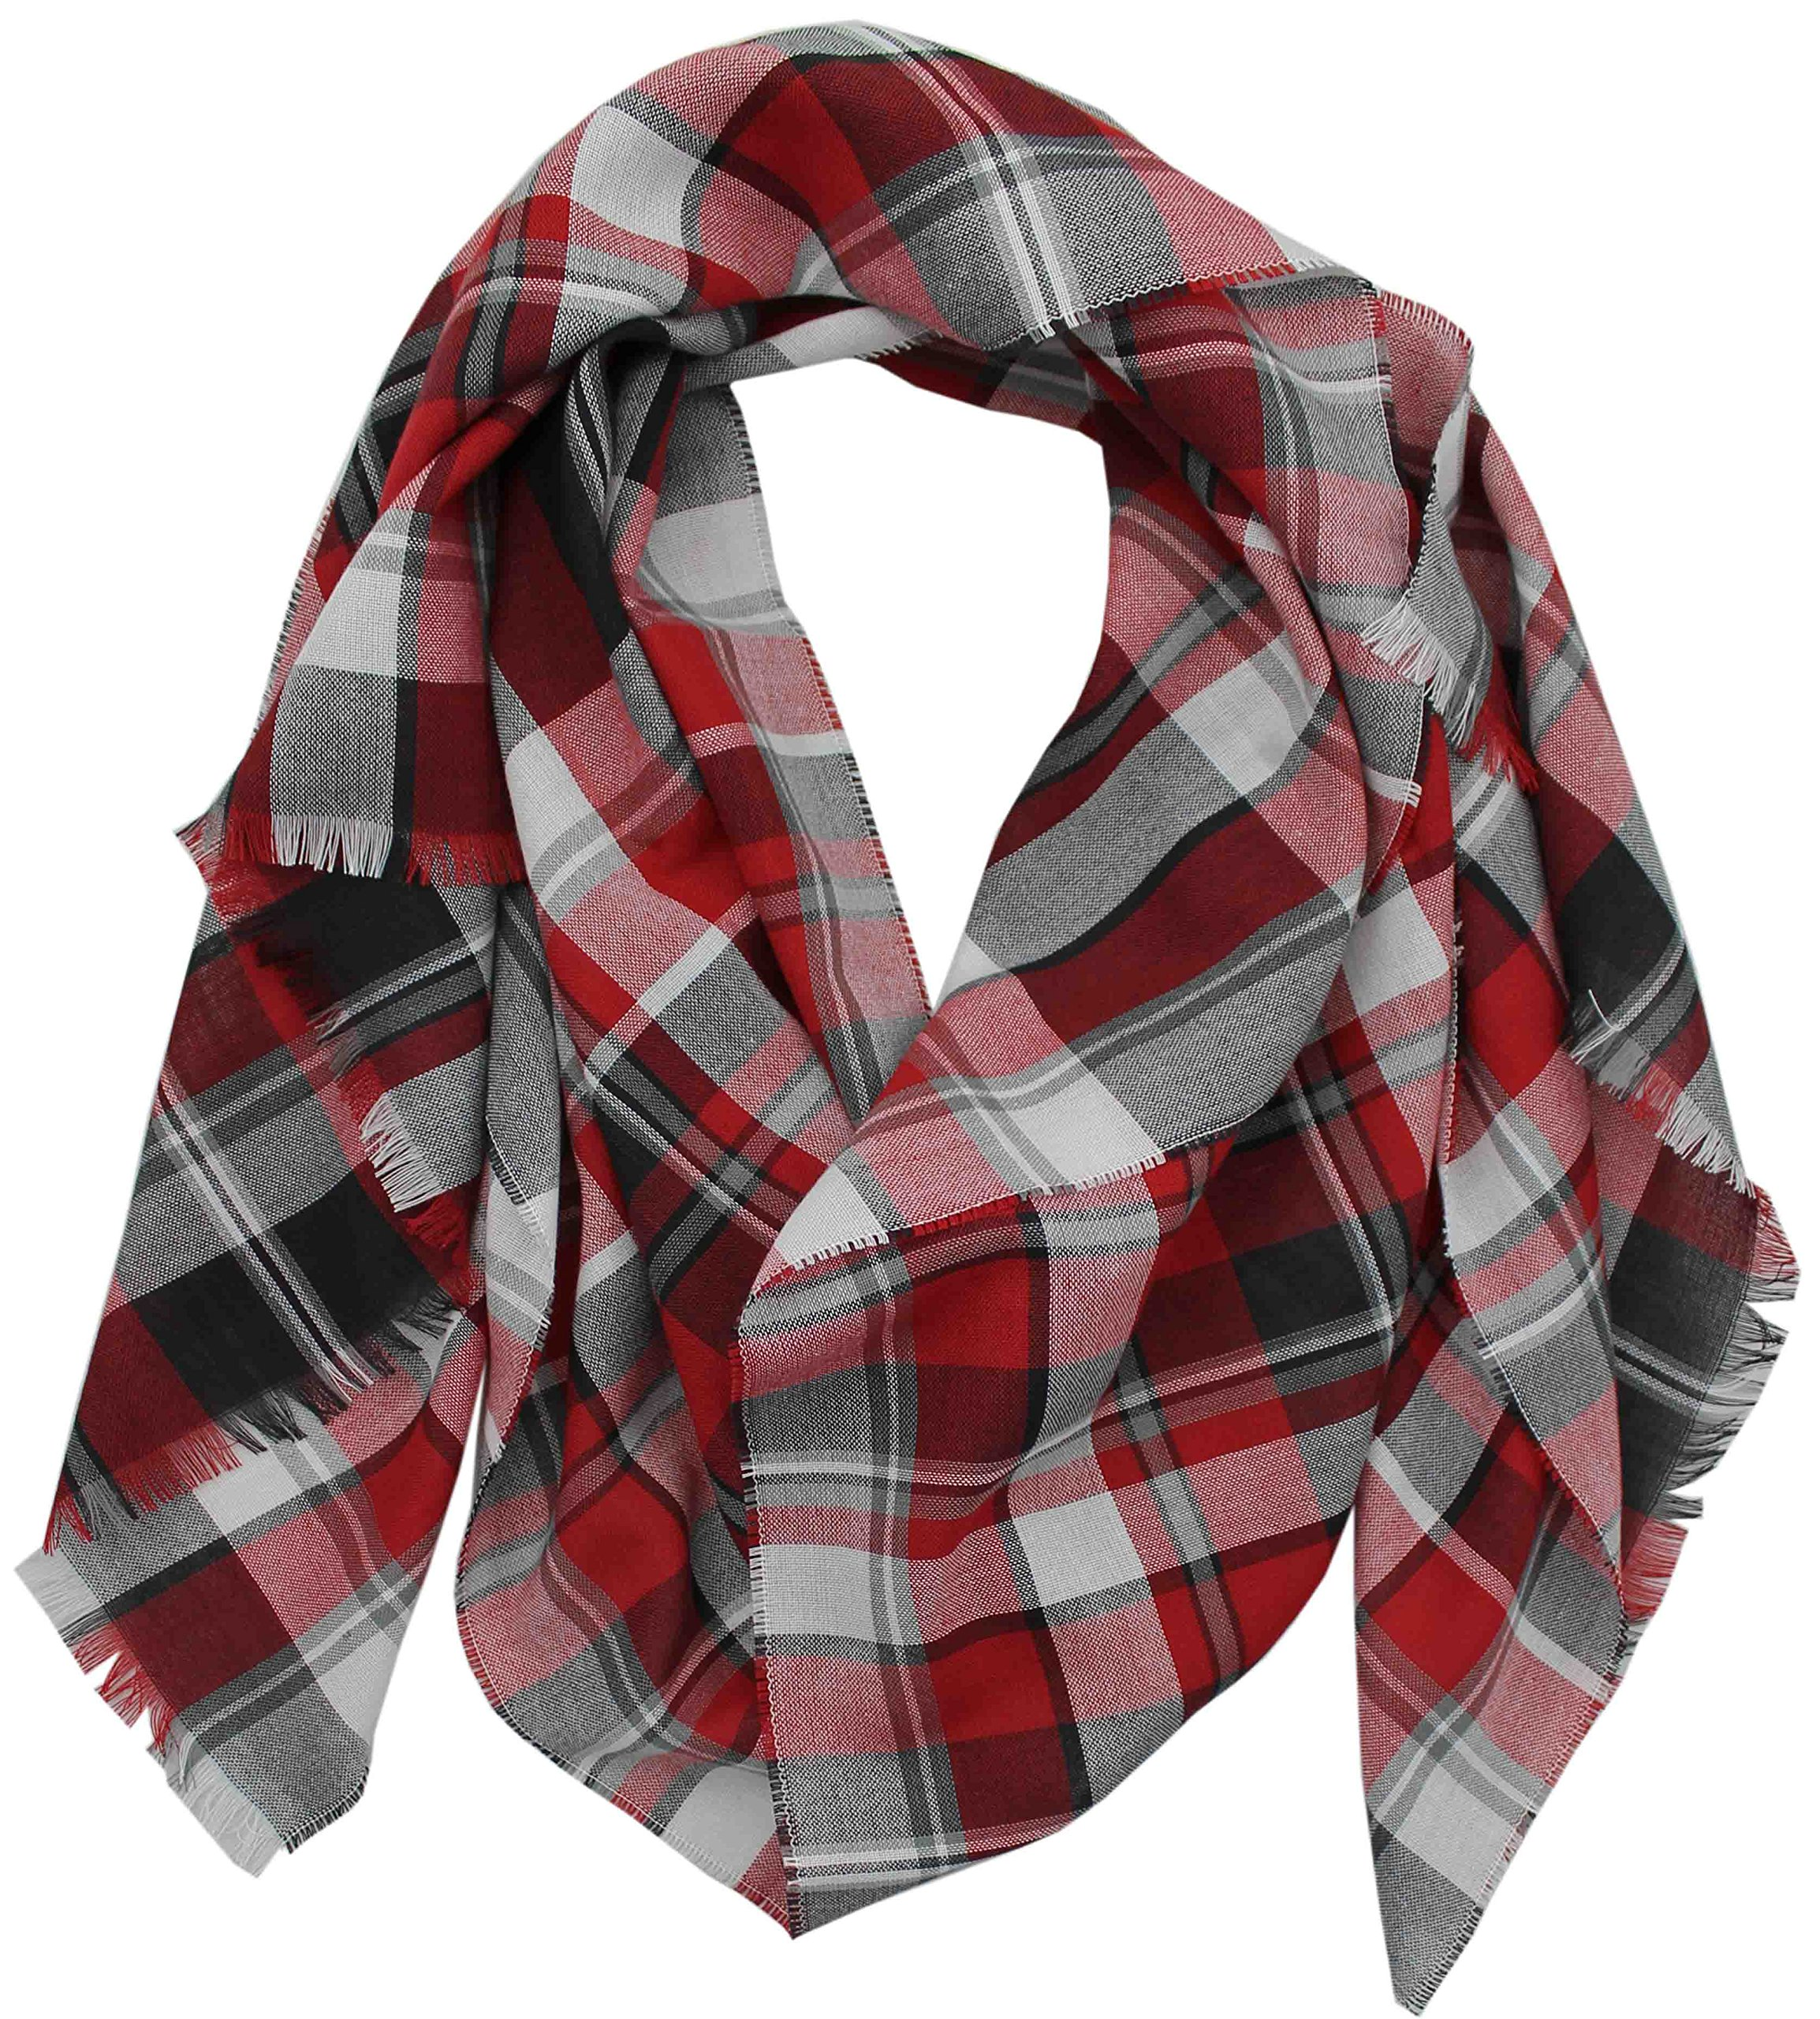 Cotton Scarf Men Scarf Summer Scarf Red Fox Plaid slightly multicolored 200 x 52 cm Made in Germany